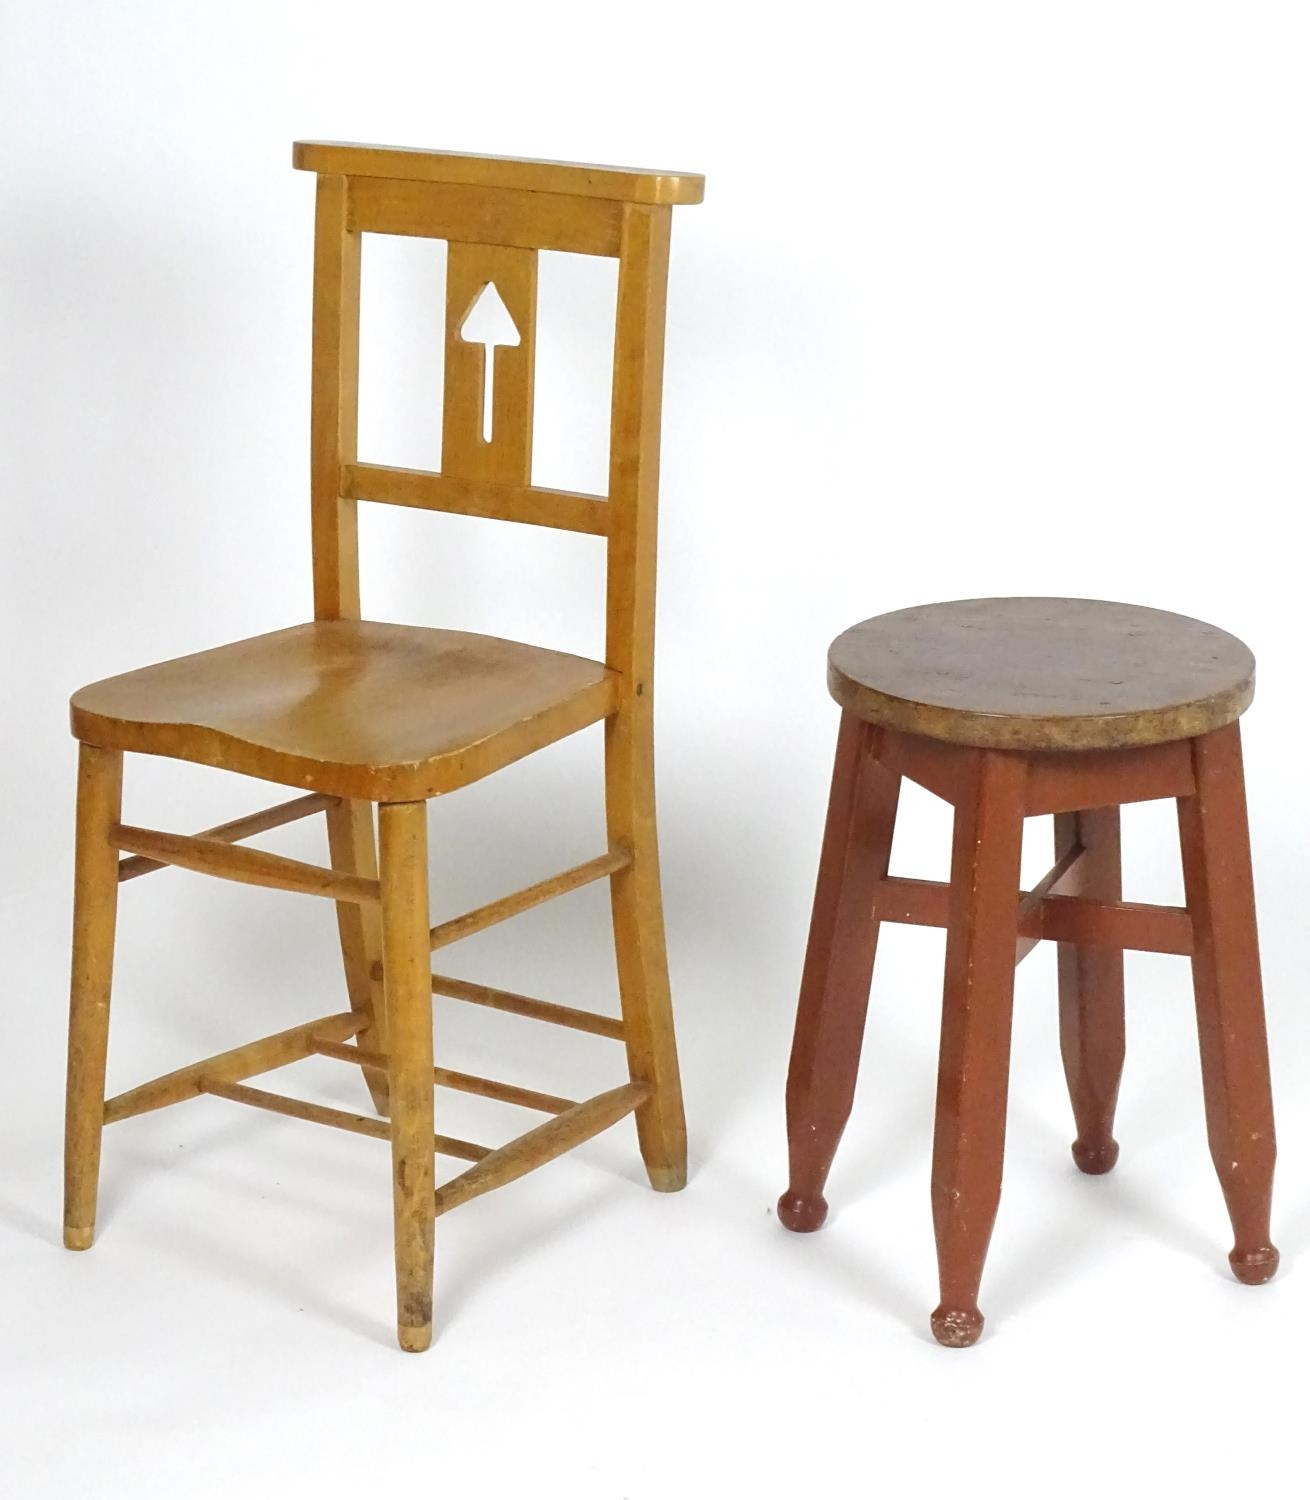 An early 20thC pine stool together with a chair having a shaped top rail and pierced back splat. - Image 4 of 4